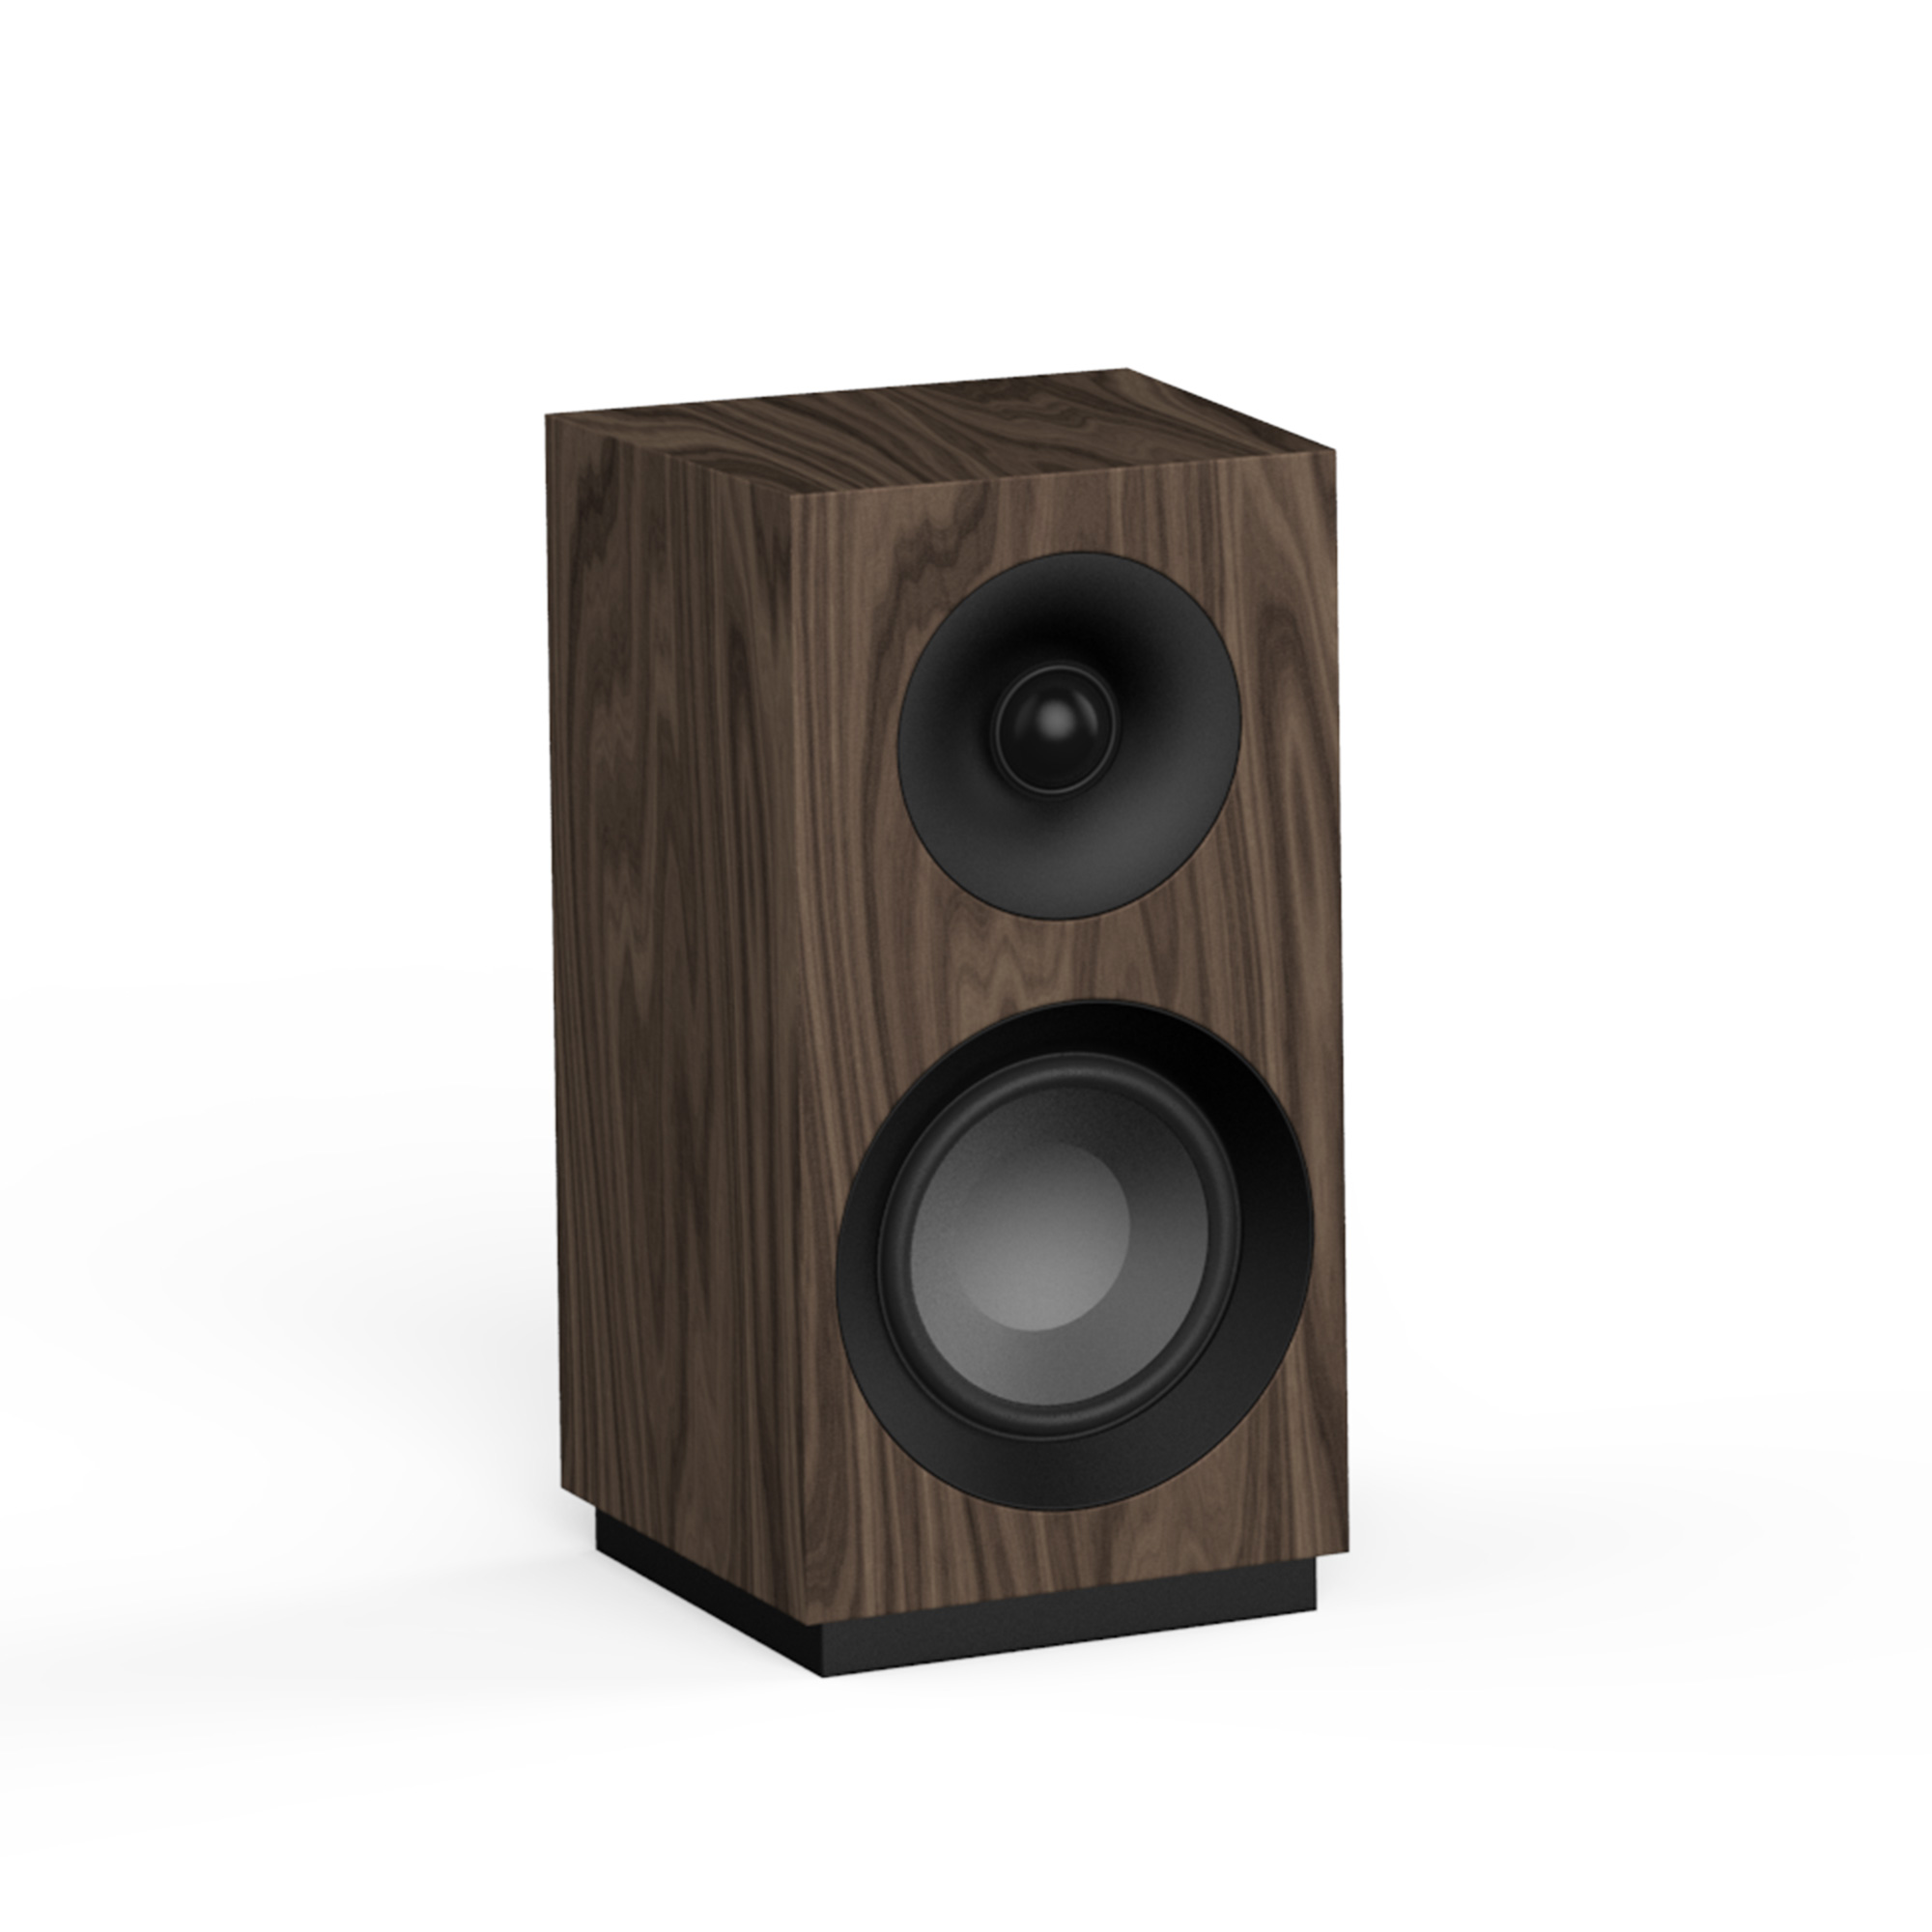 wharfedale reviews diamond bookshelf speakers speaker cinema pair digital